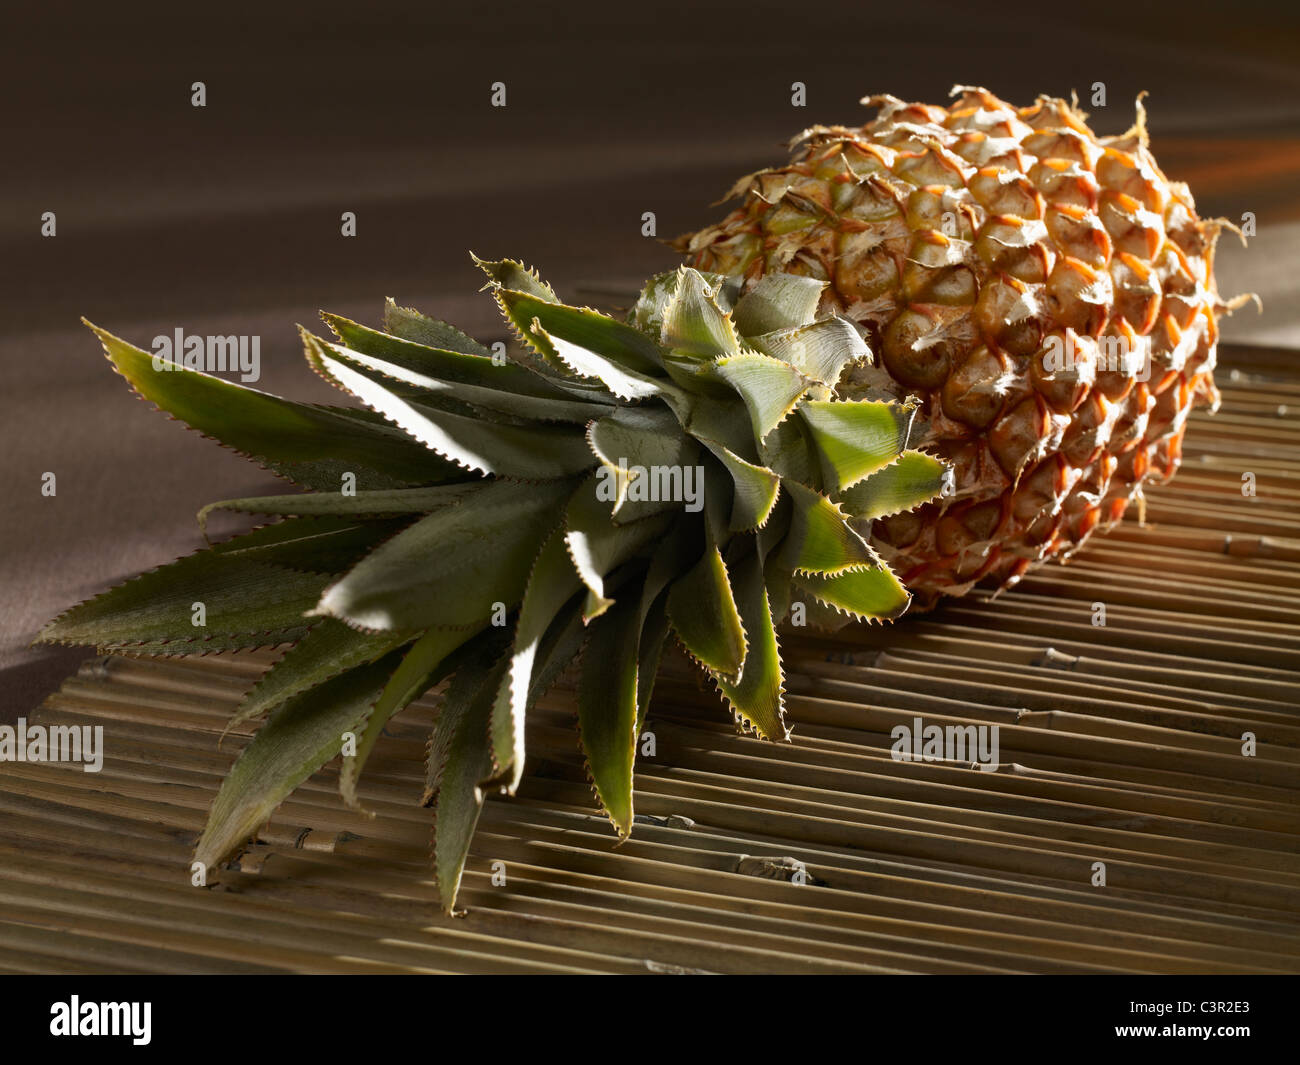 Pineapple on place mat, close-up - Stock Image